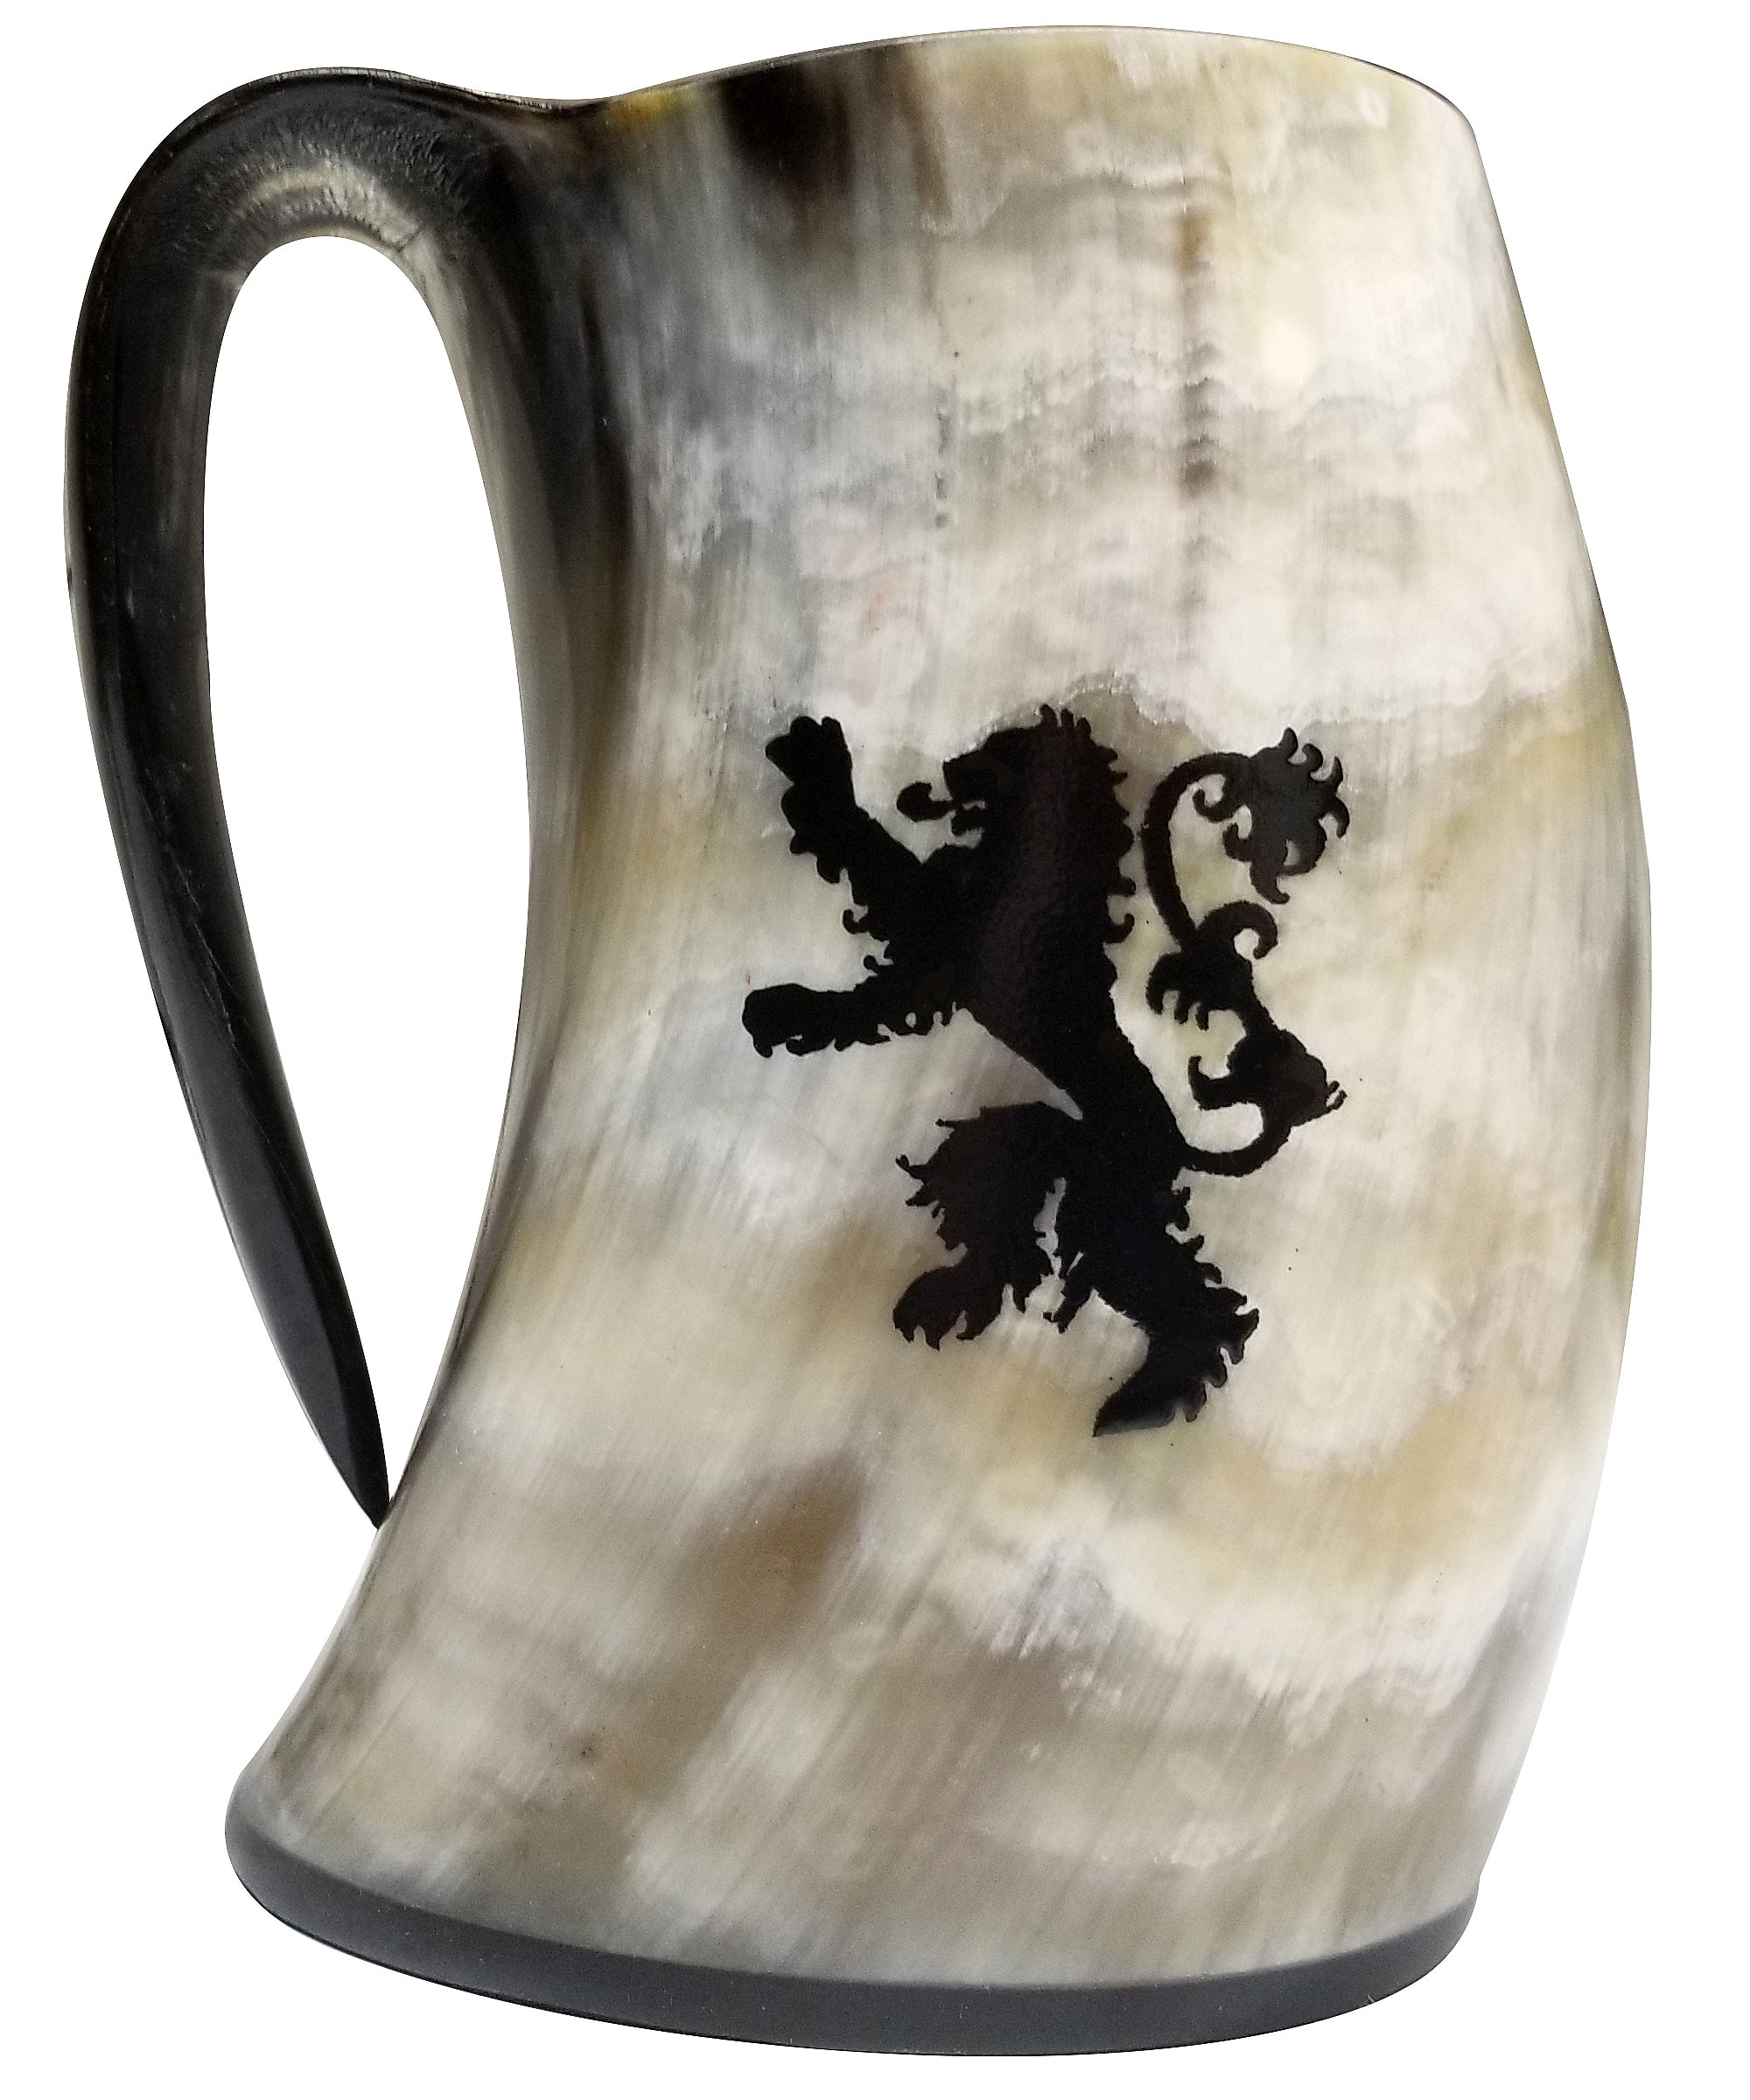 Uniquely Handcrafted & Polished That's What I Do I Drink & I Know Things Viking Drinking Horn – Inspired by Game of…